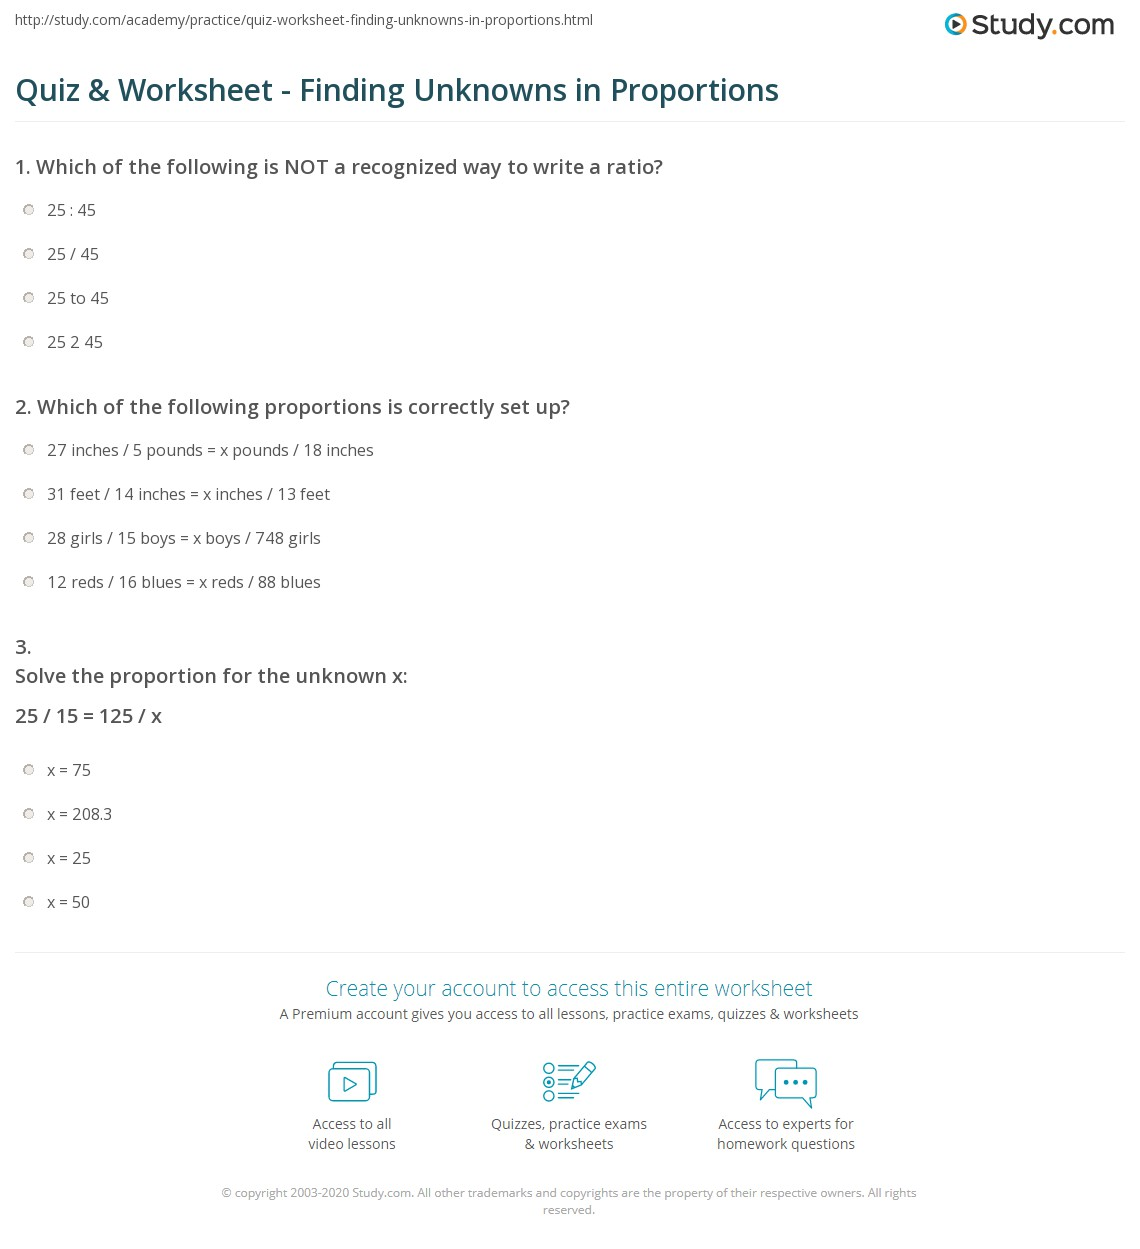 Quiz & Worksheet - Finding Unknowns in Proportions | Study.com